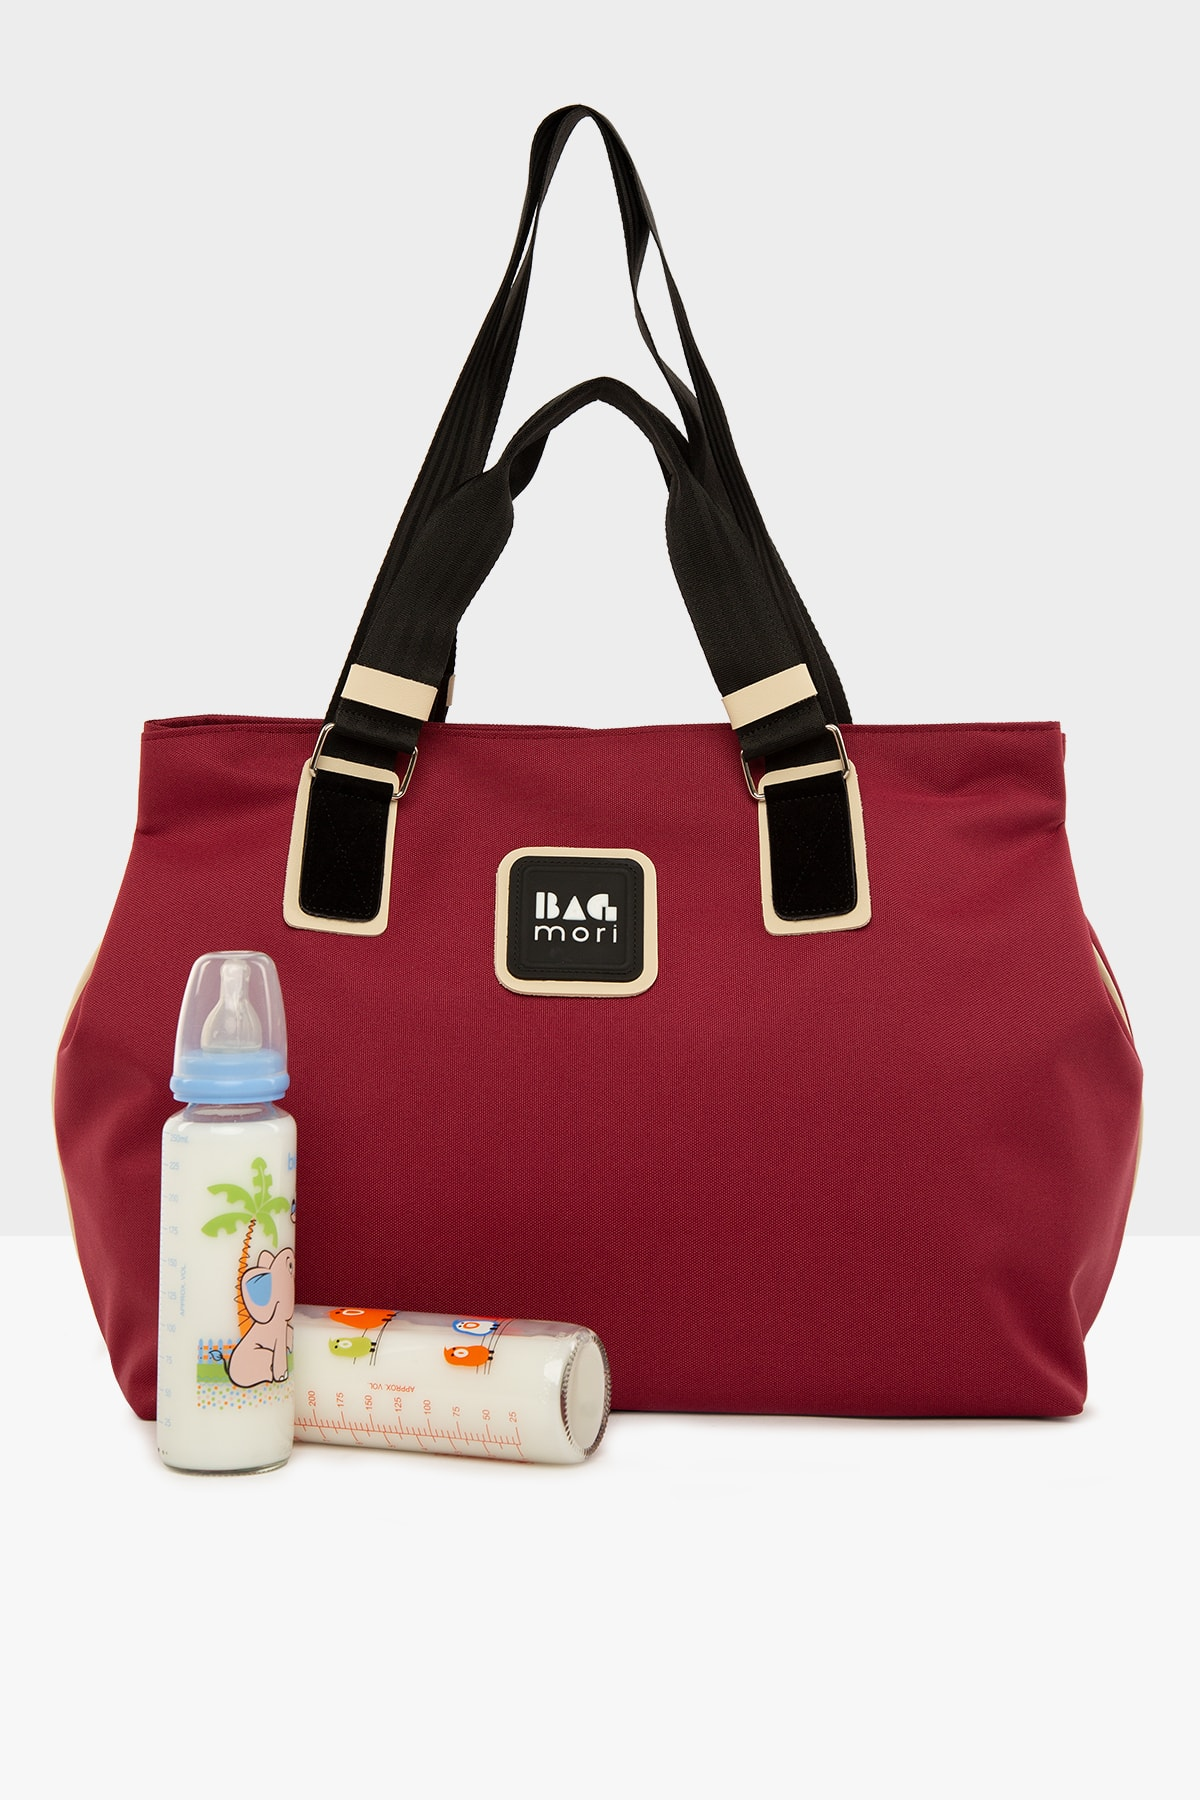 Claret Red Women's Garnished Mother Baby Care Bag with Snap Fastener for mom lunch bag for kids brea